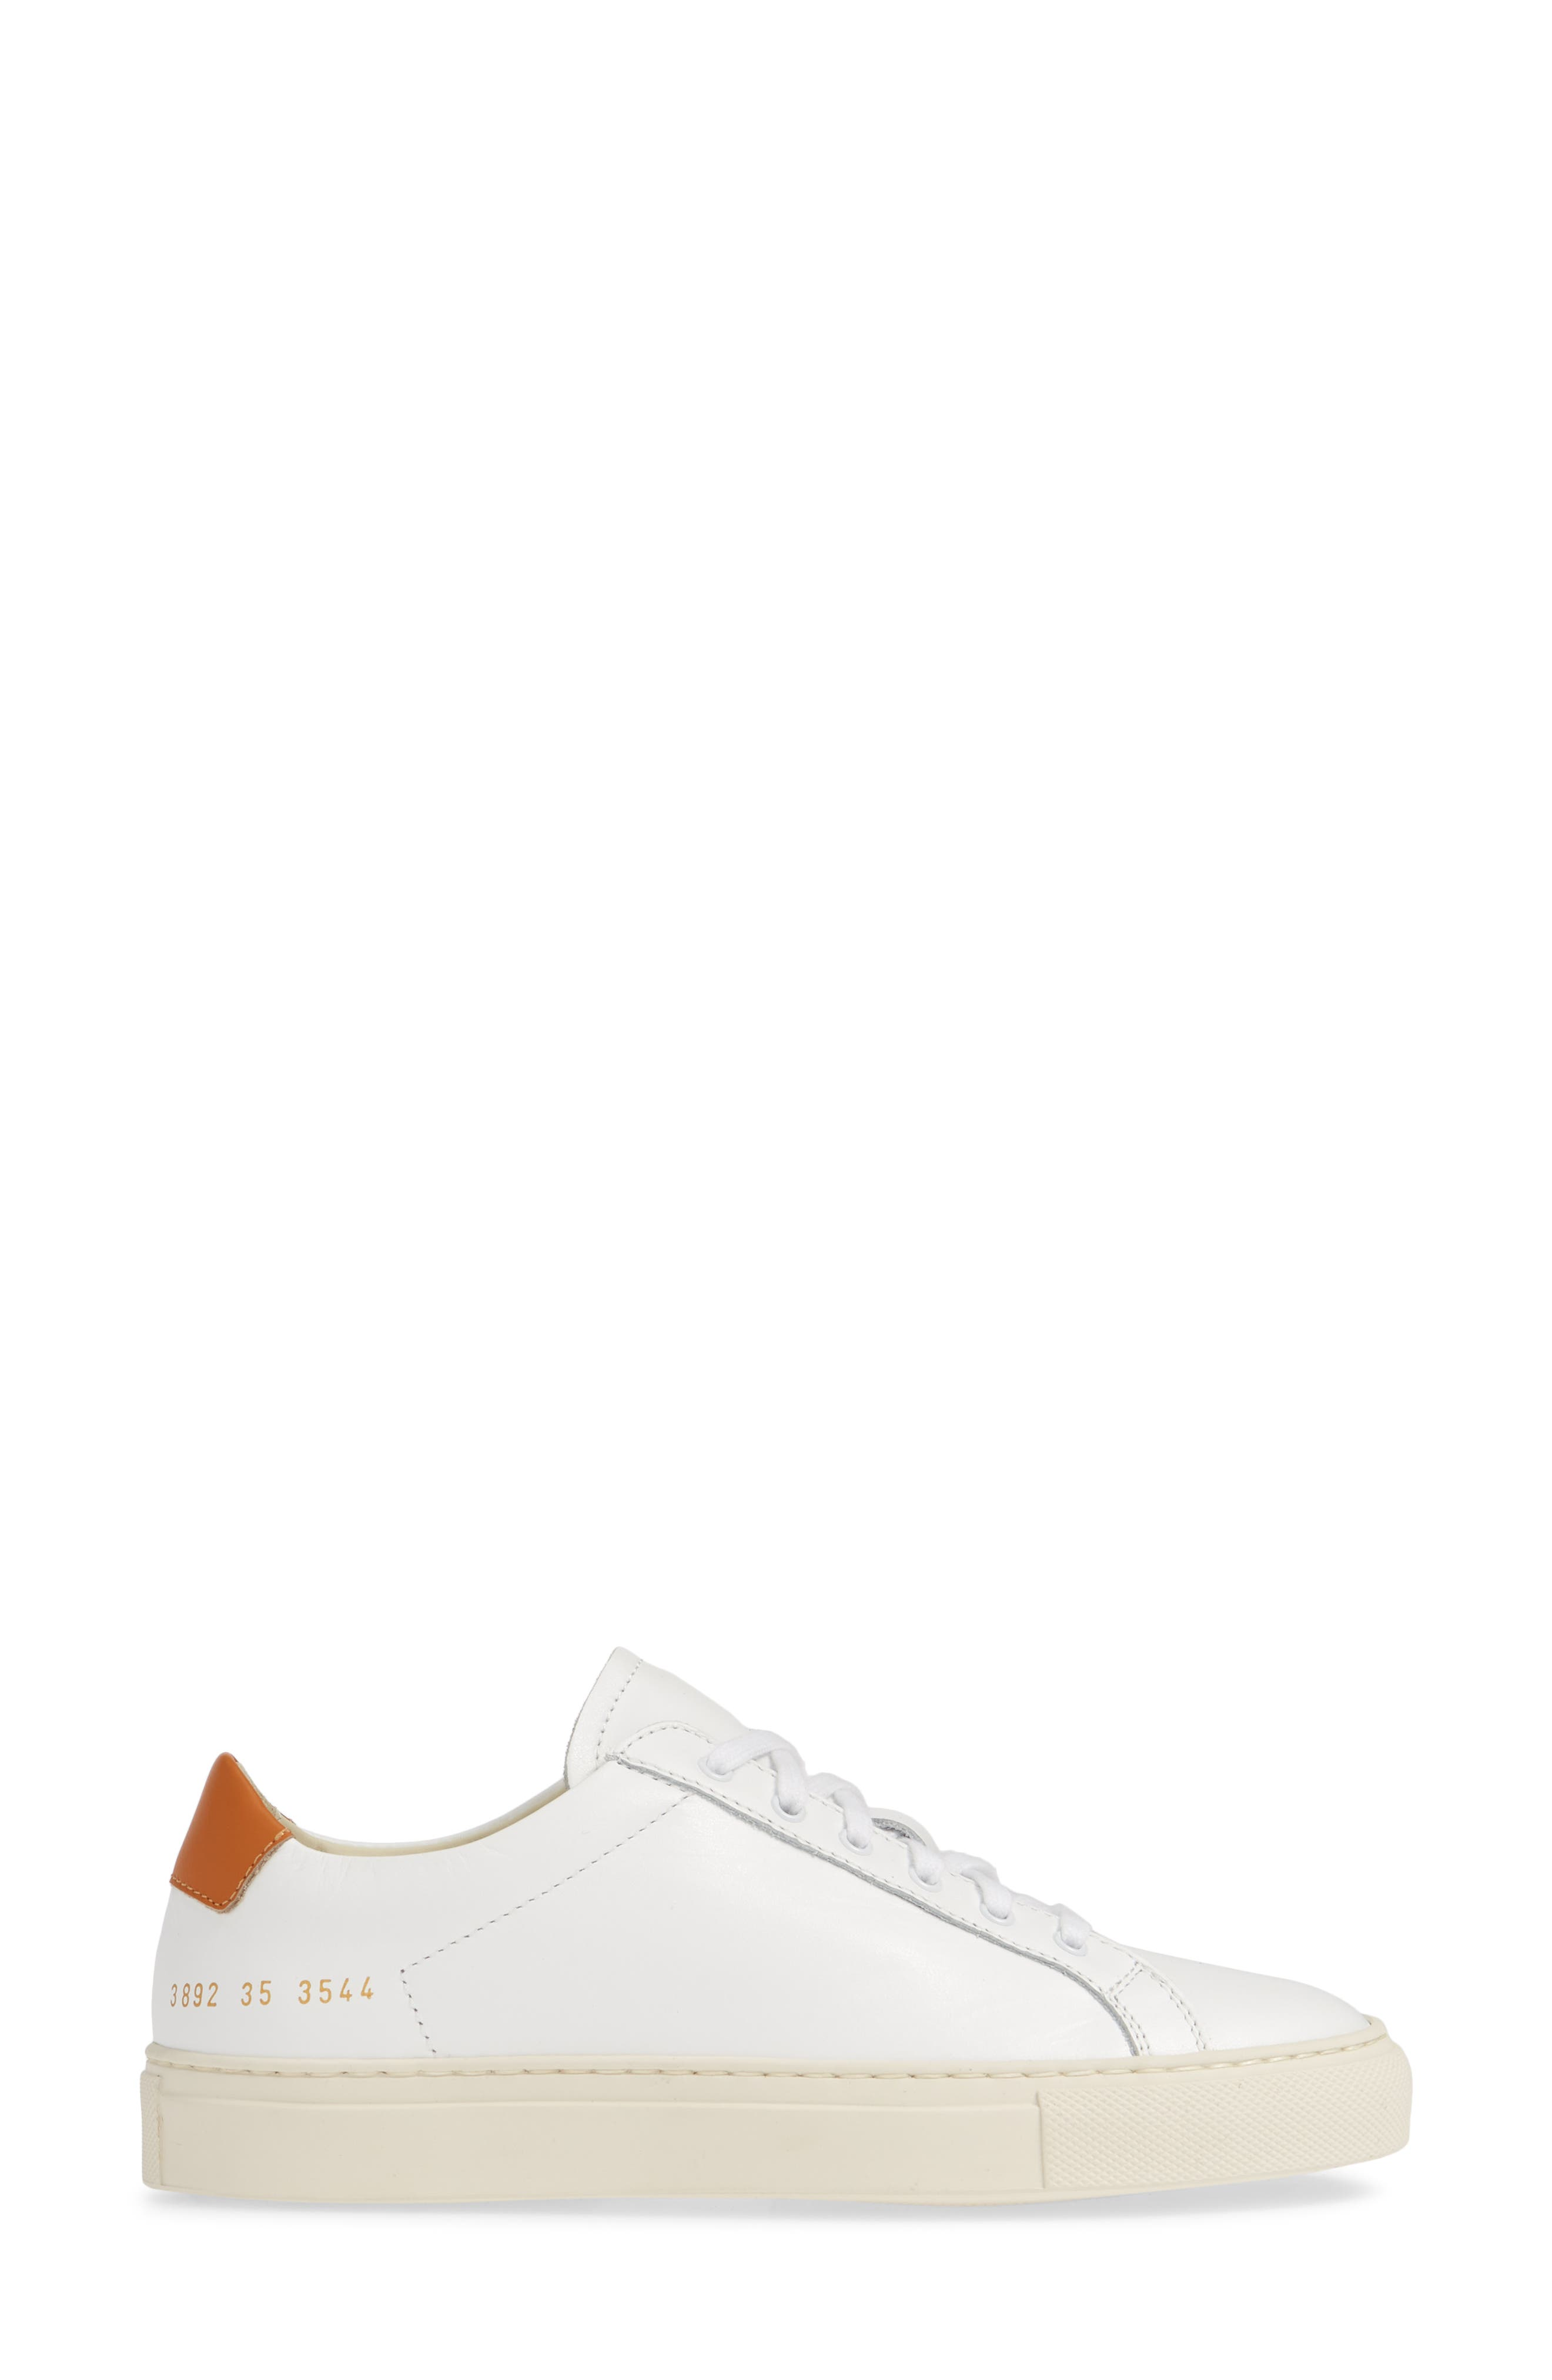 COMMON PROJECTS, Retro Low Top Sneaker, Alternate thumbnail 3, color, WHITE/ BROWN